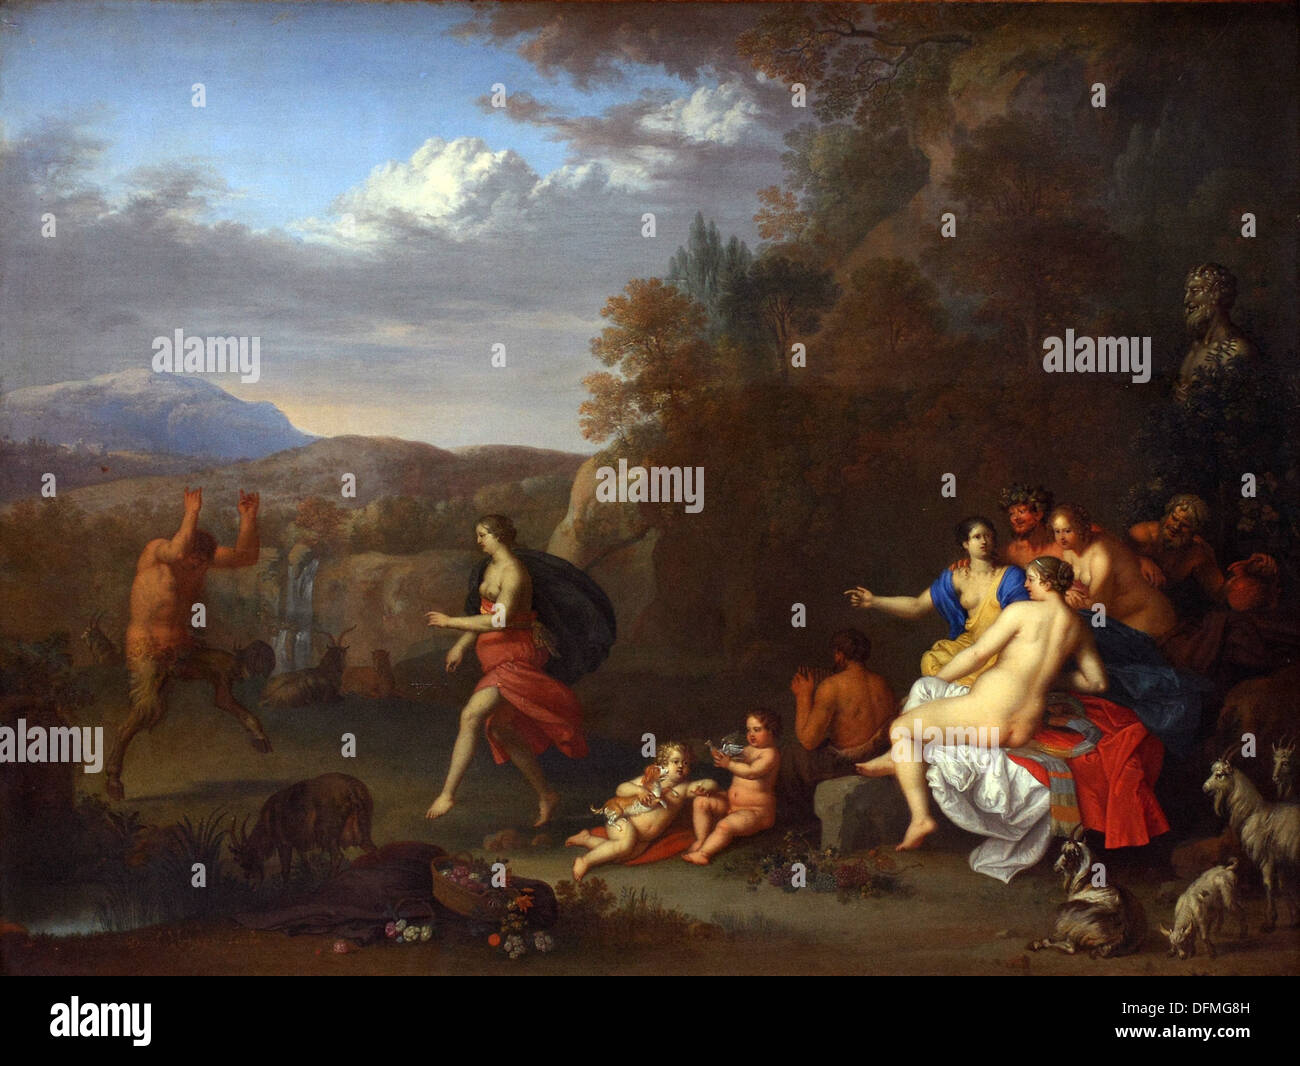 Daniel VERTAGEN - Nymps and Satyrs - 17th century - Museum of Fine Arts - Budapest, Hungary - Stock Image